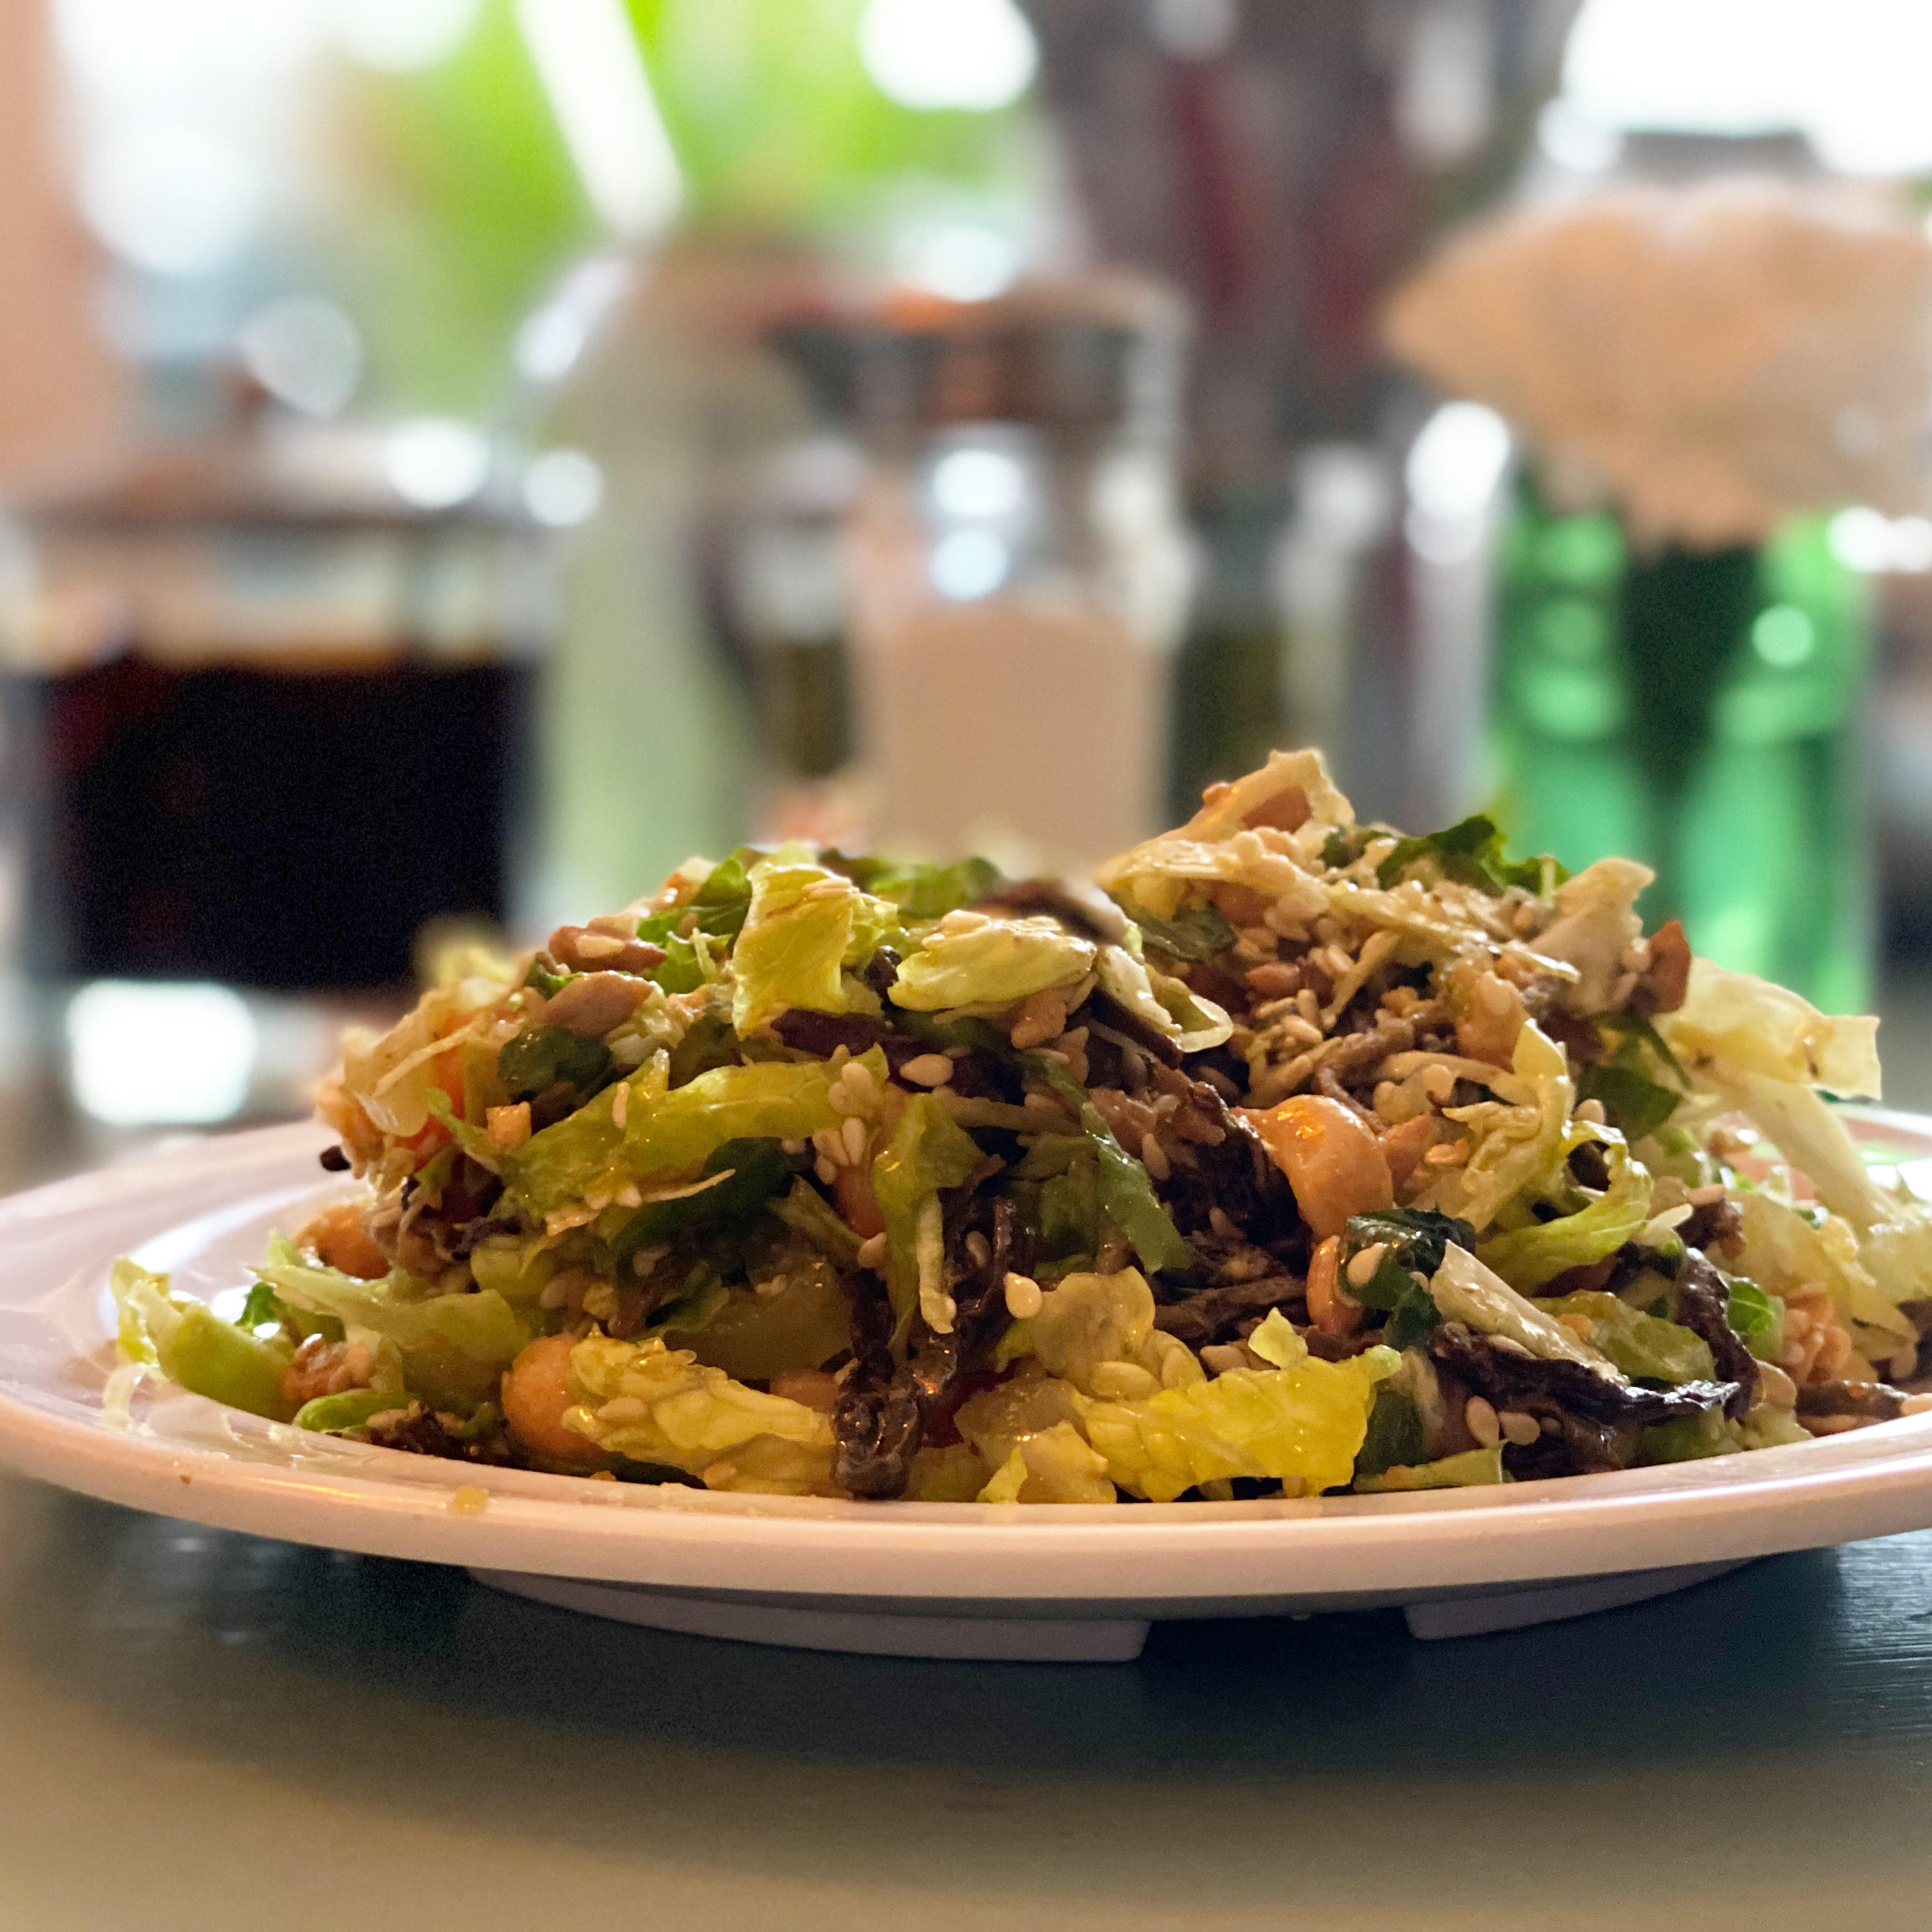 A white plate loaded with cabbage, tomatoes, peanuts, and sesame seeds looks like a pile of green, with pops of brown from the fried garlic and dark splotches of fermented tea leaves